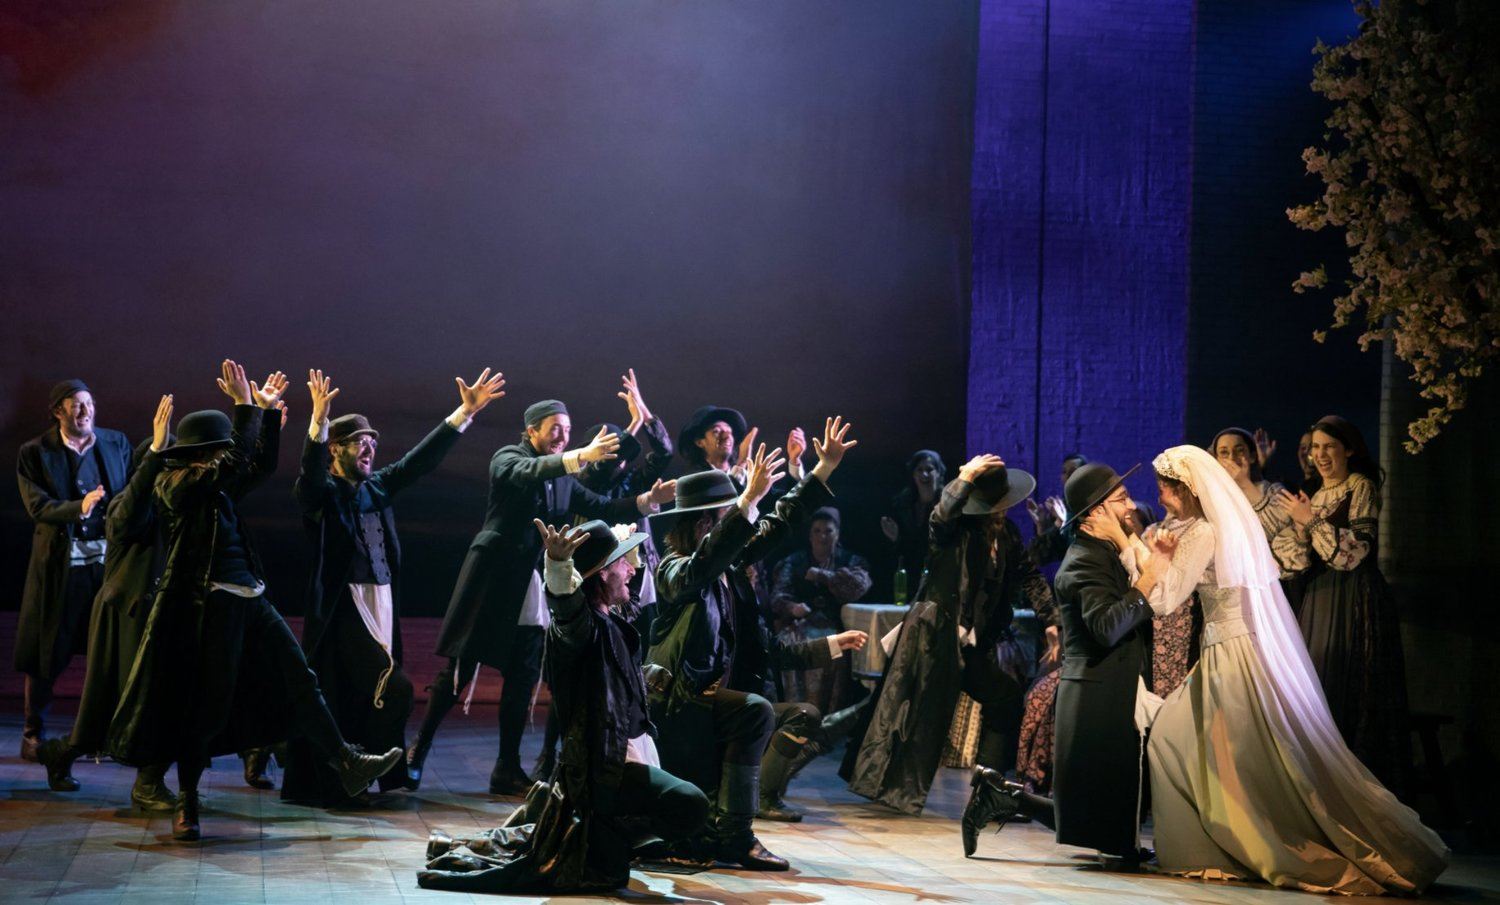 BWW Review: FIDDLER ON THE ROOF at Dr. Phillips Center